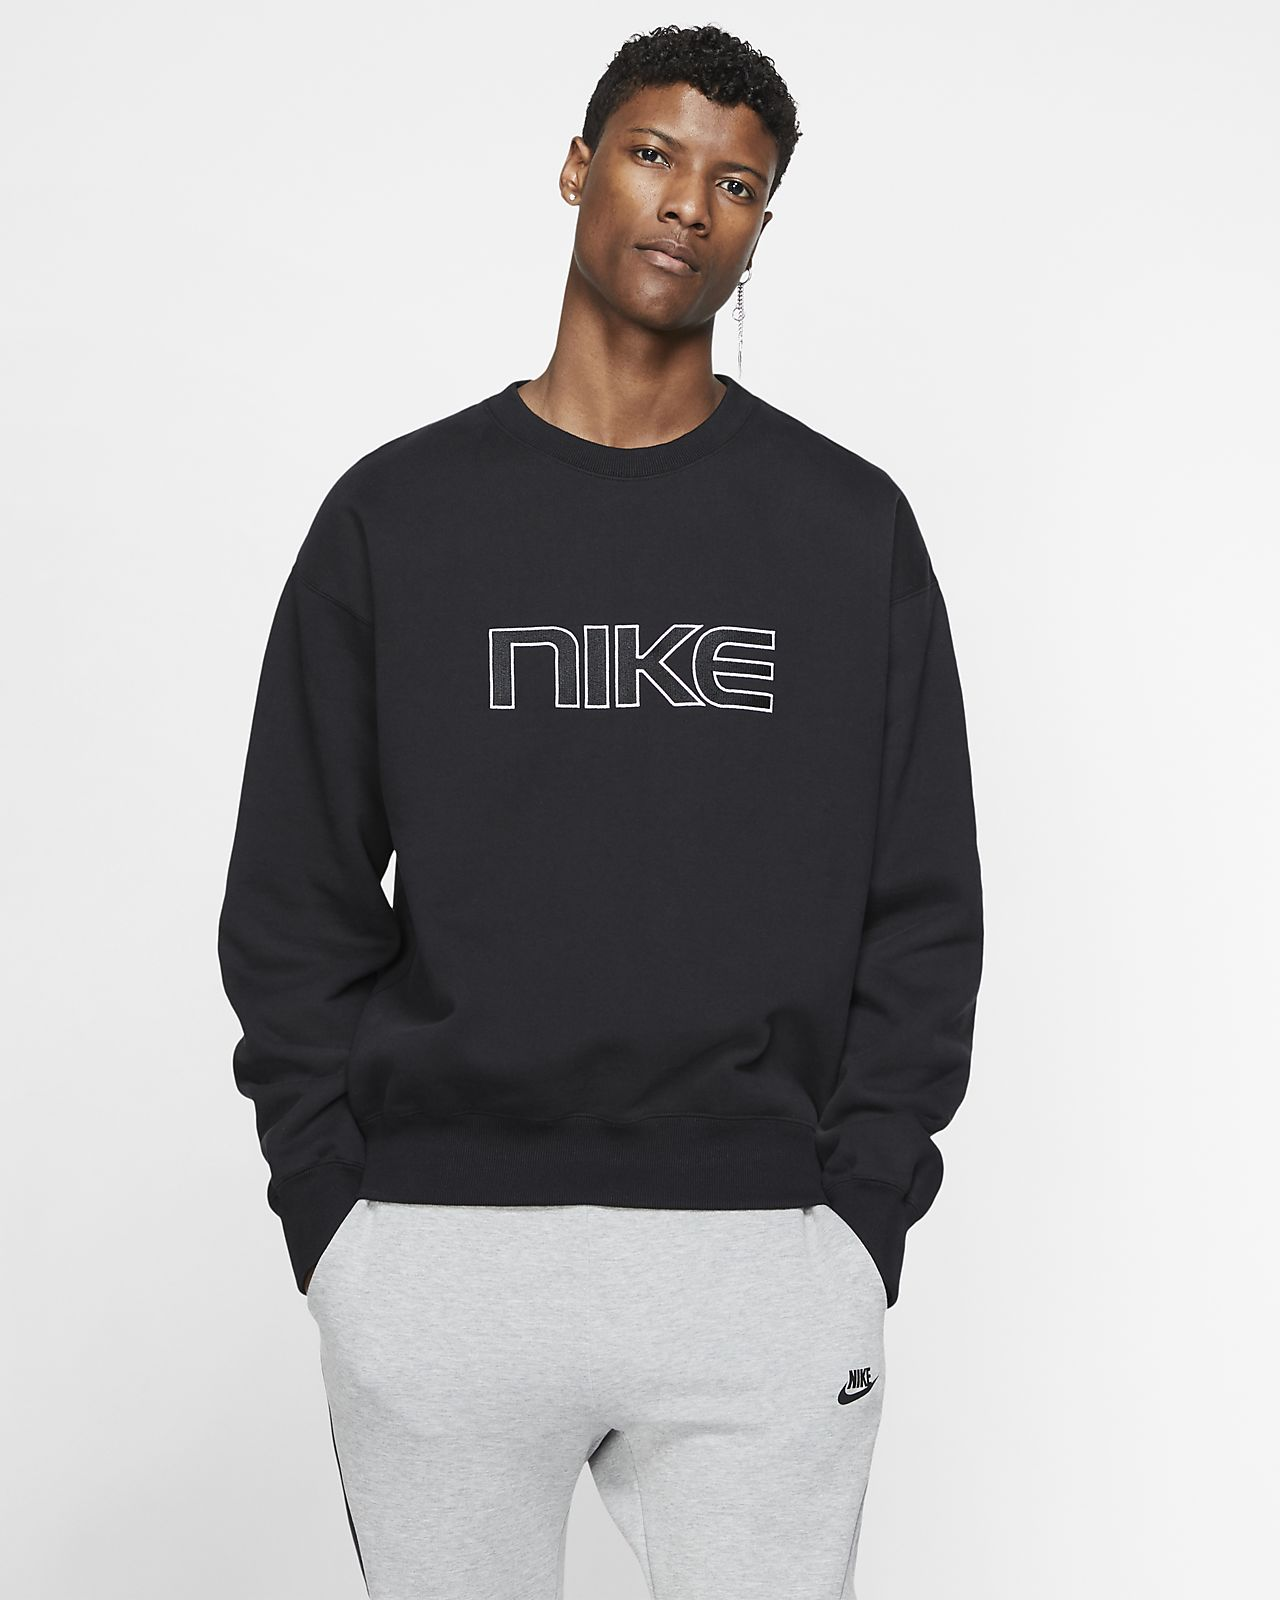 NikeLab Collection Herren-Rundhalsshirt